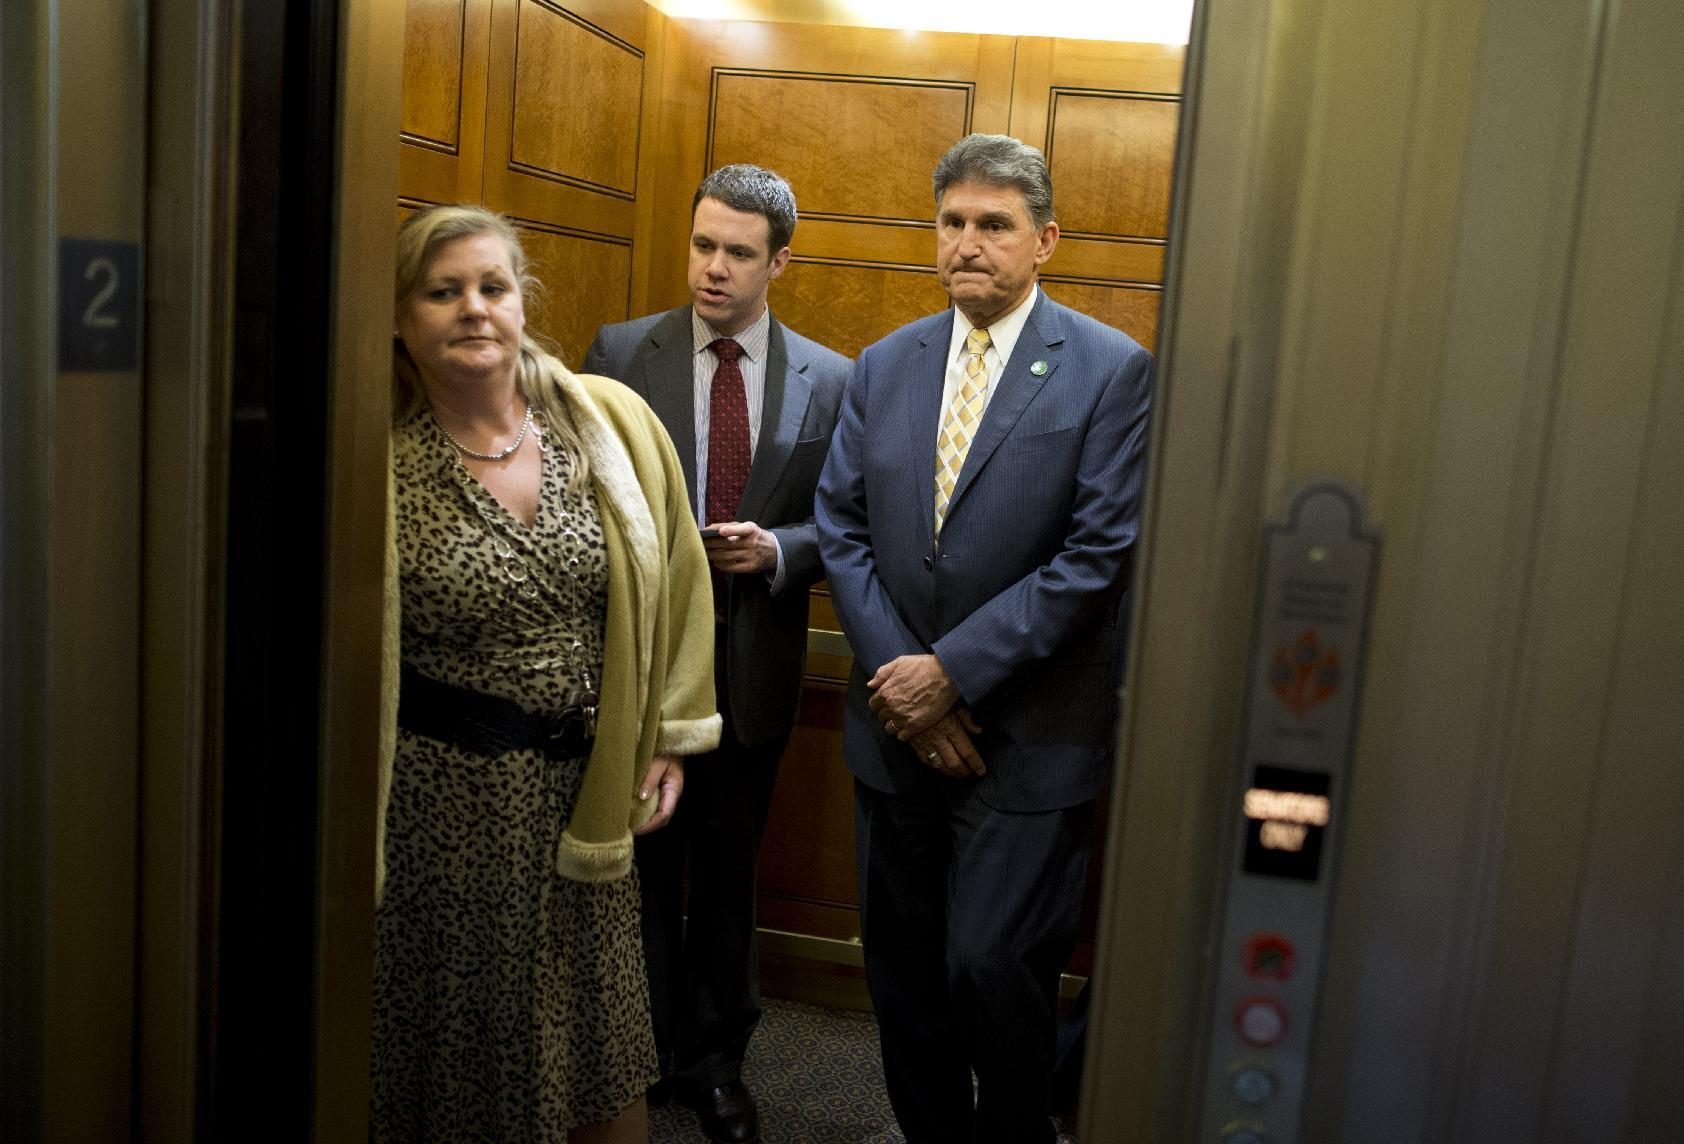 Sen. Joe Manchin, D-W.Va., right, co-author of gun control legislation, gets in an elevator after a caucus on Capitol Hill in Washington, Thursday, April 18, 2013. (AP Photo/Evan Vucci)